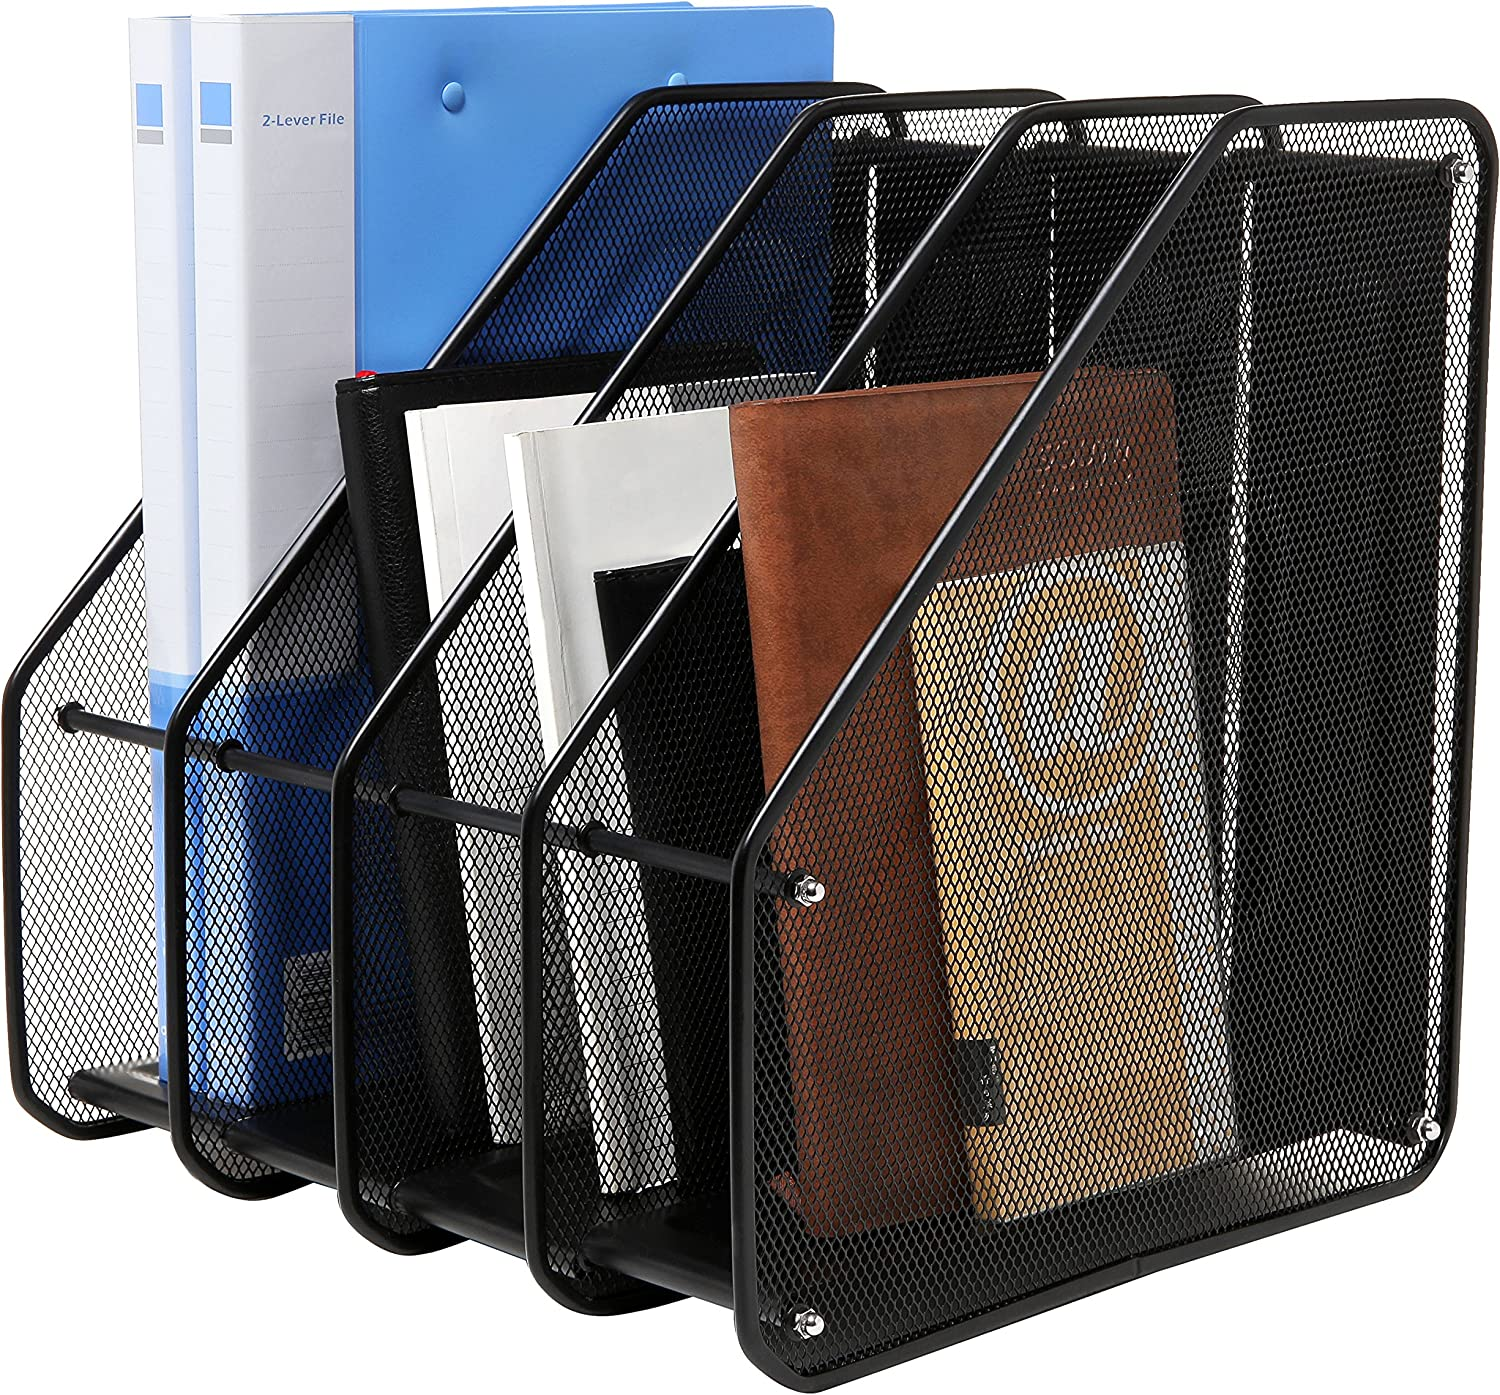 Heavy Duty 4 Compartment Black Metal Mesh Office Desktop Document & File Organizer Rack/Magazine Holder